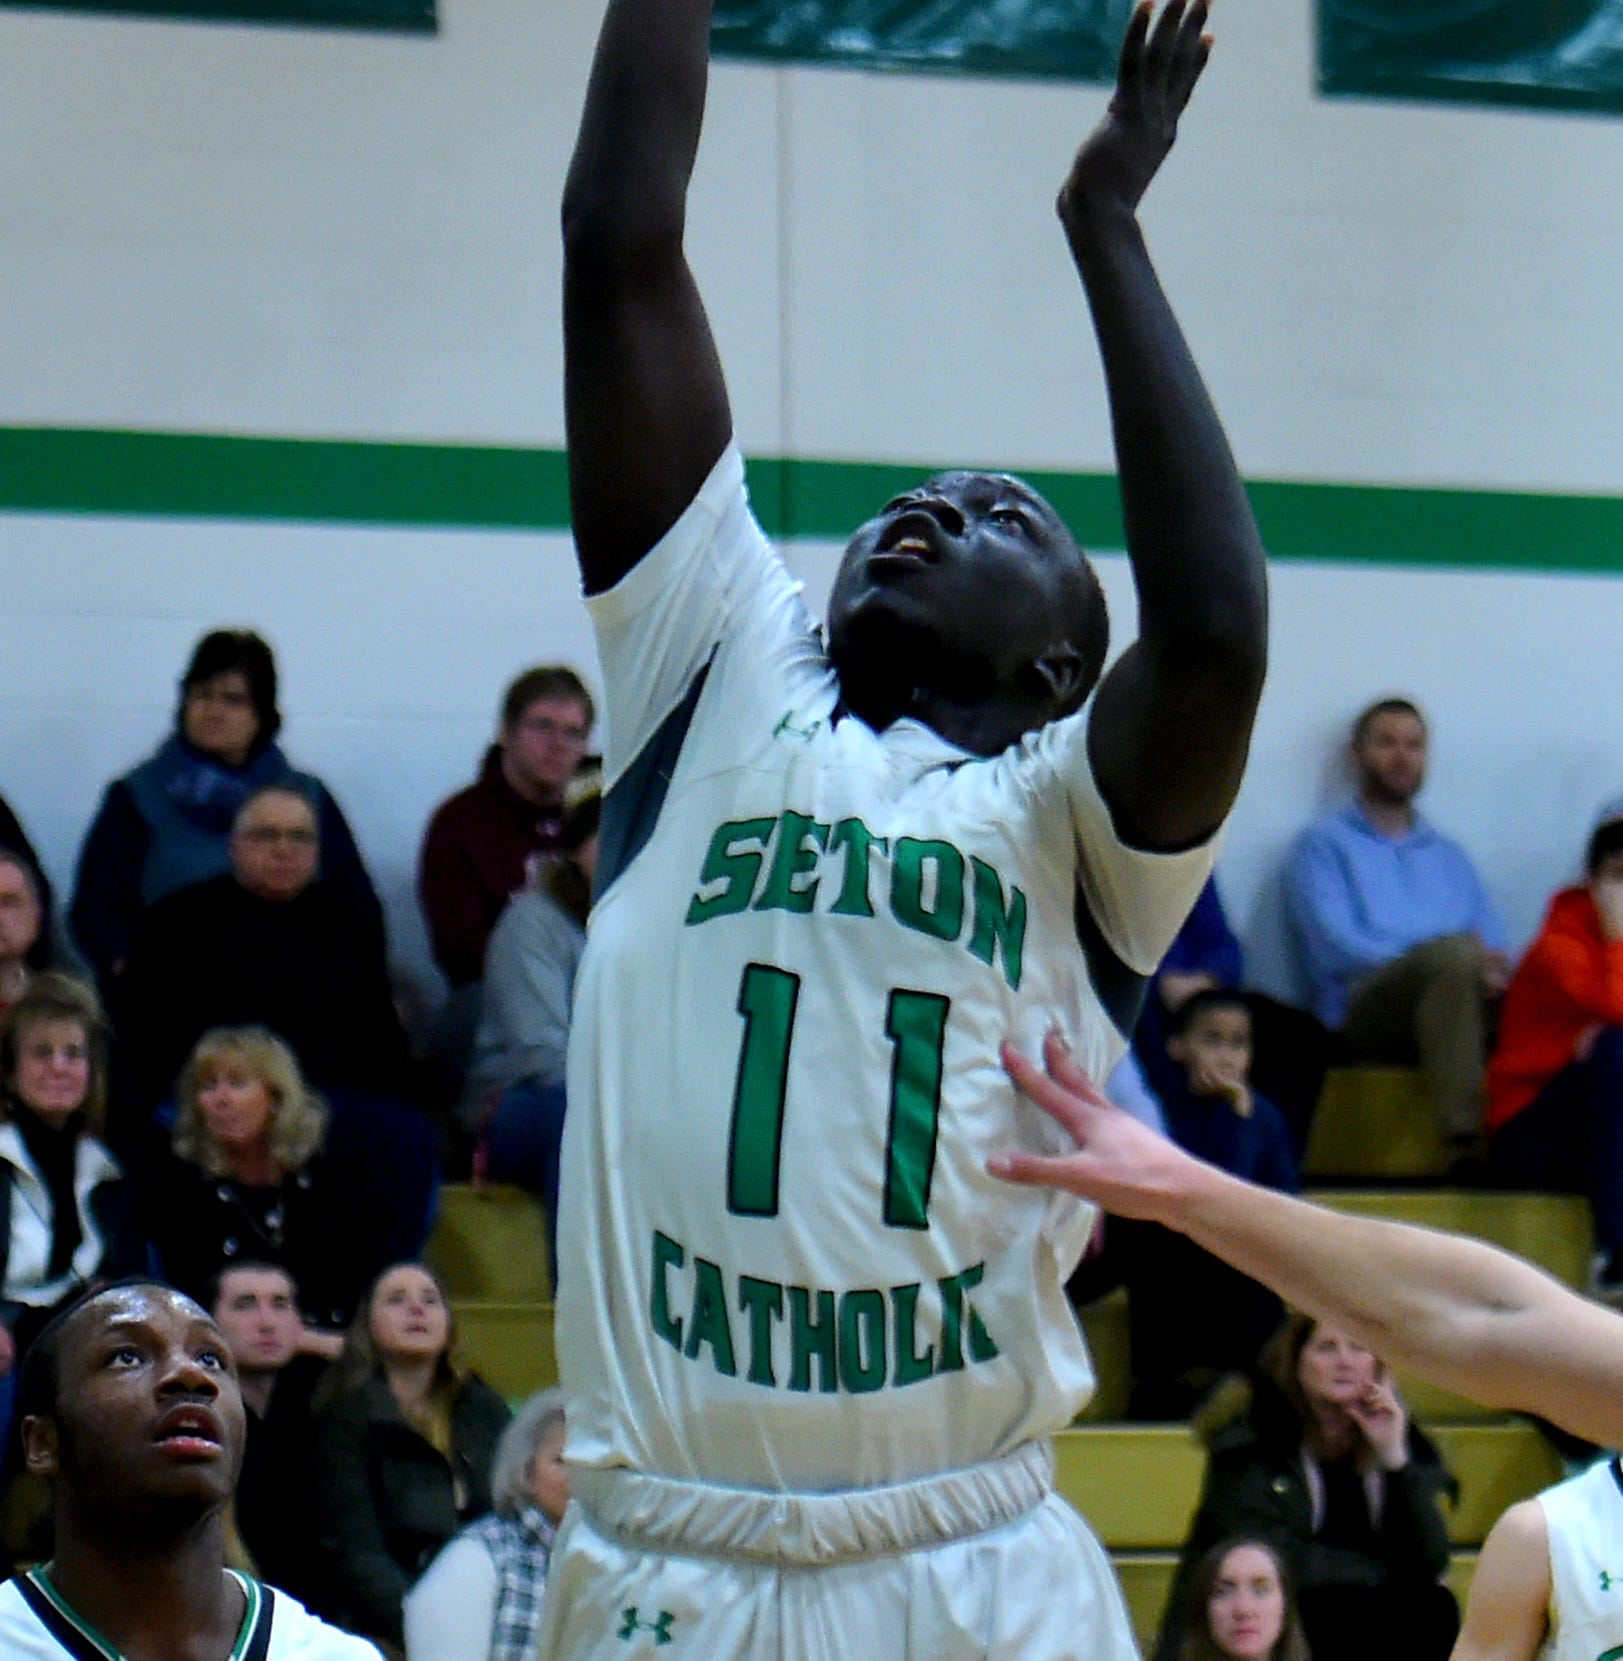 Seton Catholic Central vs. Elmira, STAC semifinal basketball at SCC in Binghamton, Wednesday, February 13, 2019.